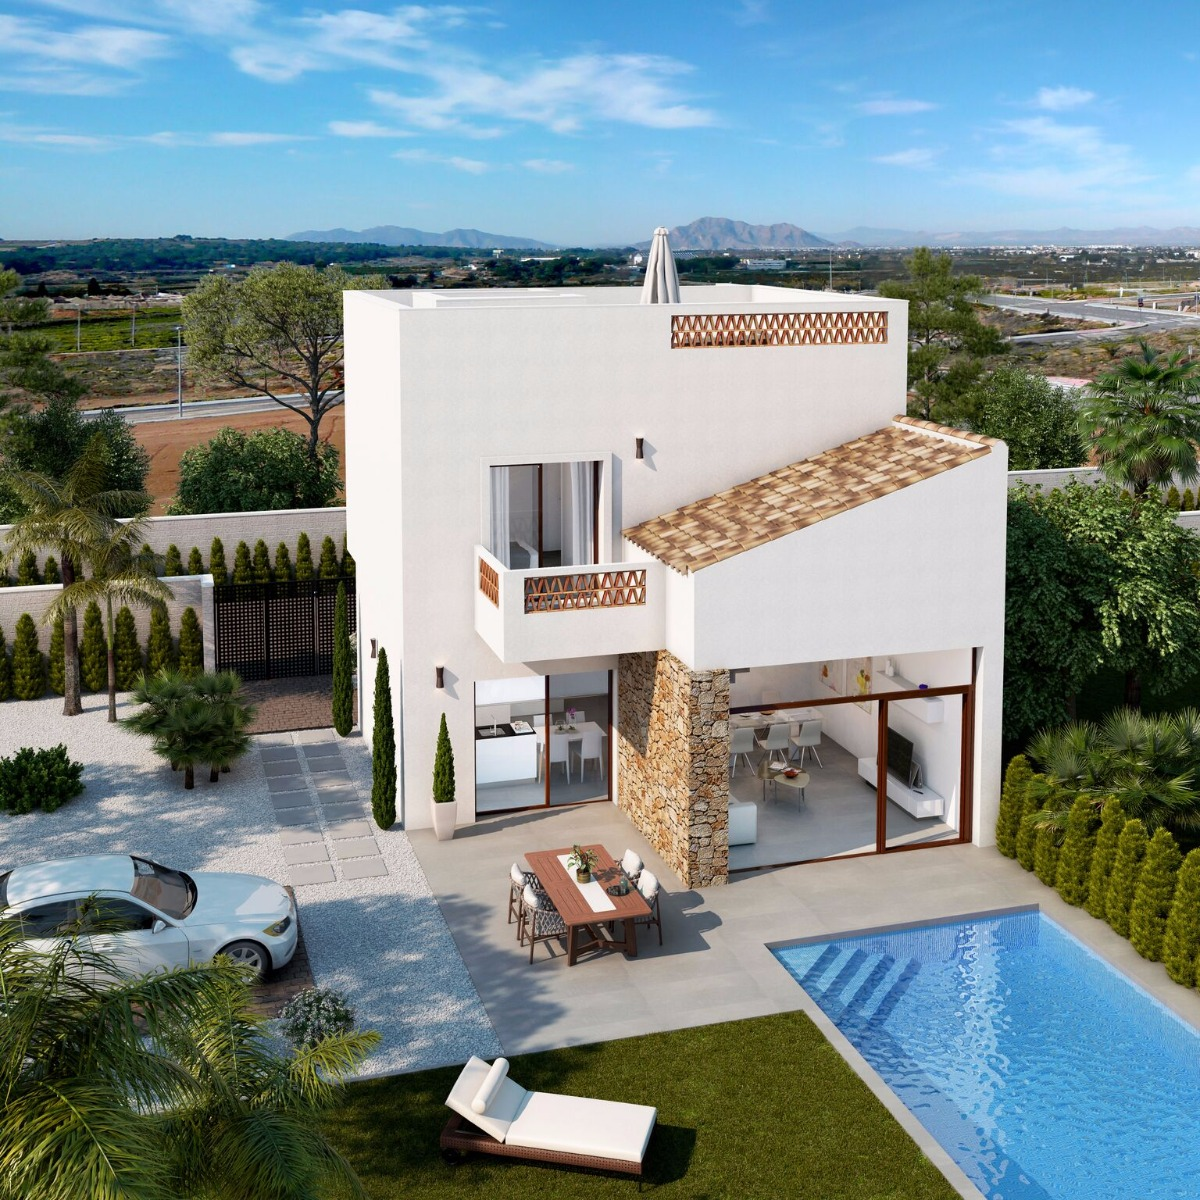 Independent villas in modern style surrounded by all services - Keysol Property S.L.